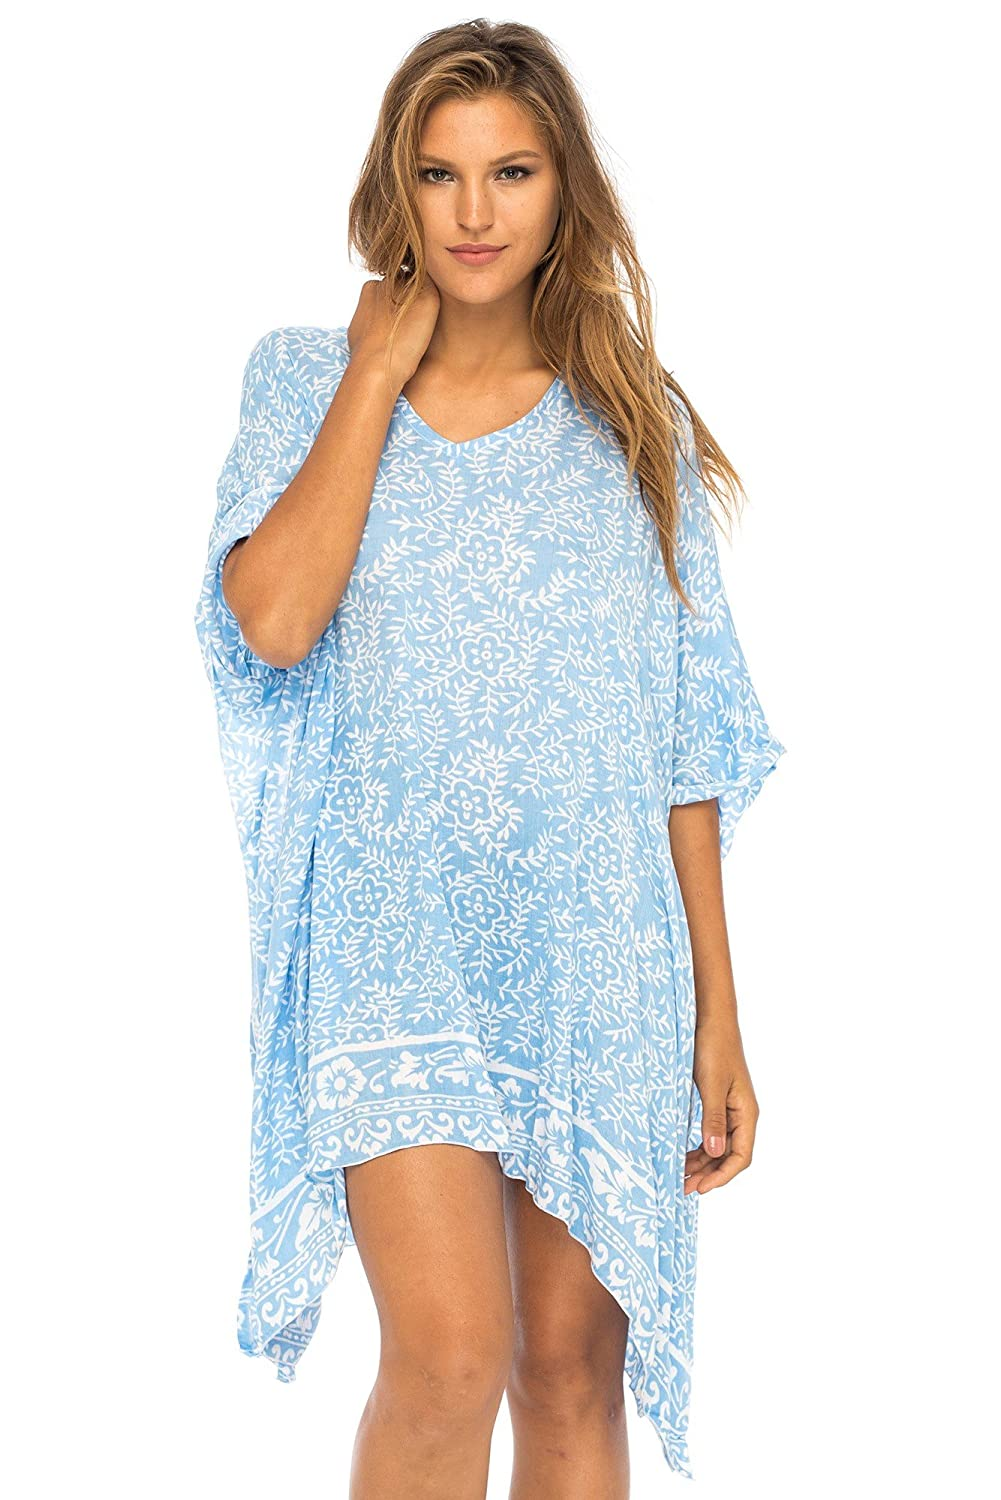 65386f4605 Enjoy the natural, feminine look of this Short Floral Caftan Cover Up with  its batik-look ferns and border florals; perfect at beach or pool